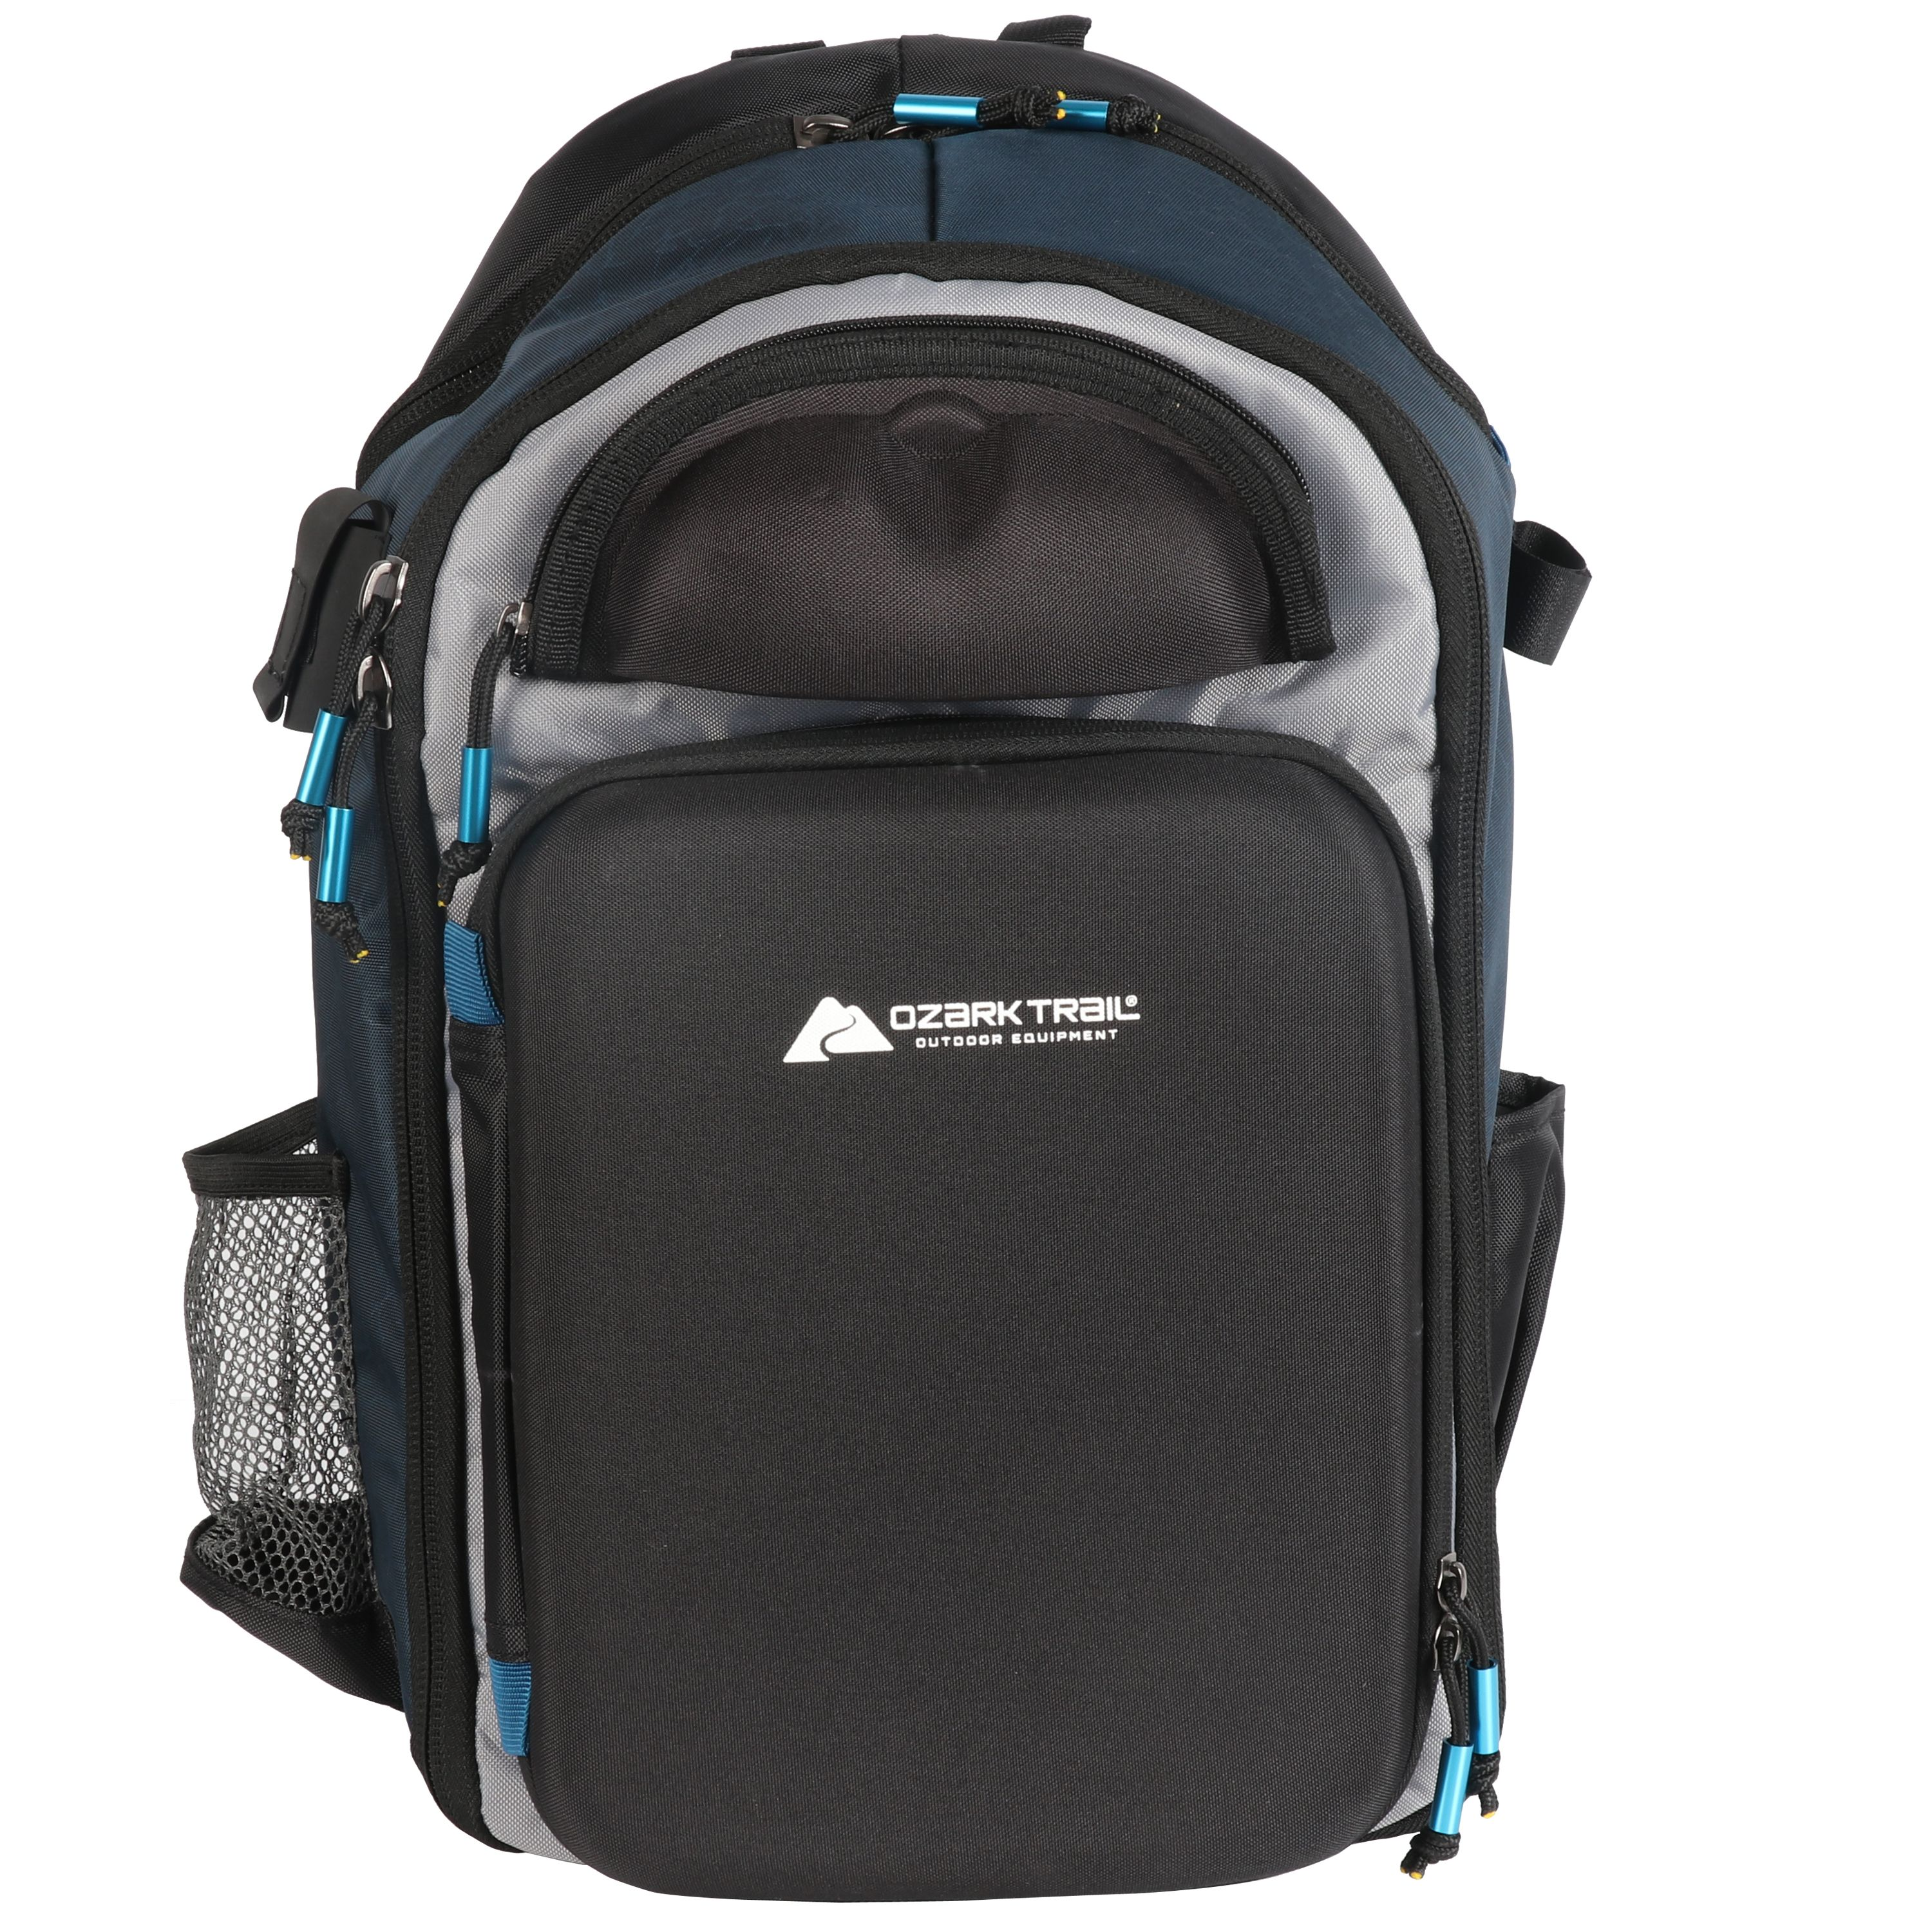 Ozark Trail Pro Series Angler Sling Backpack